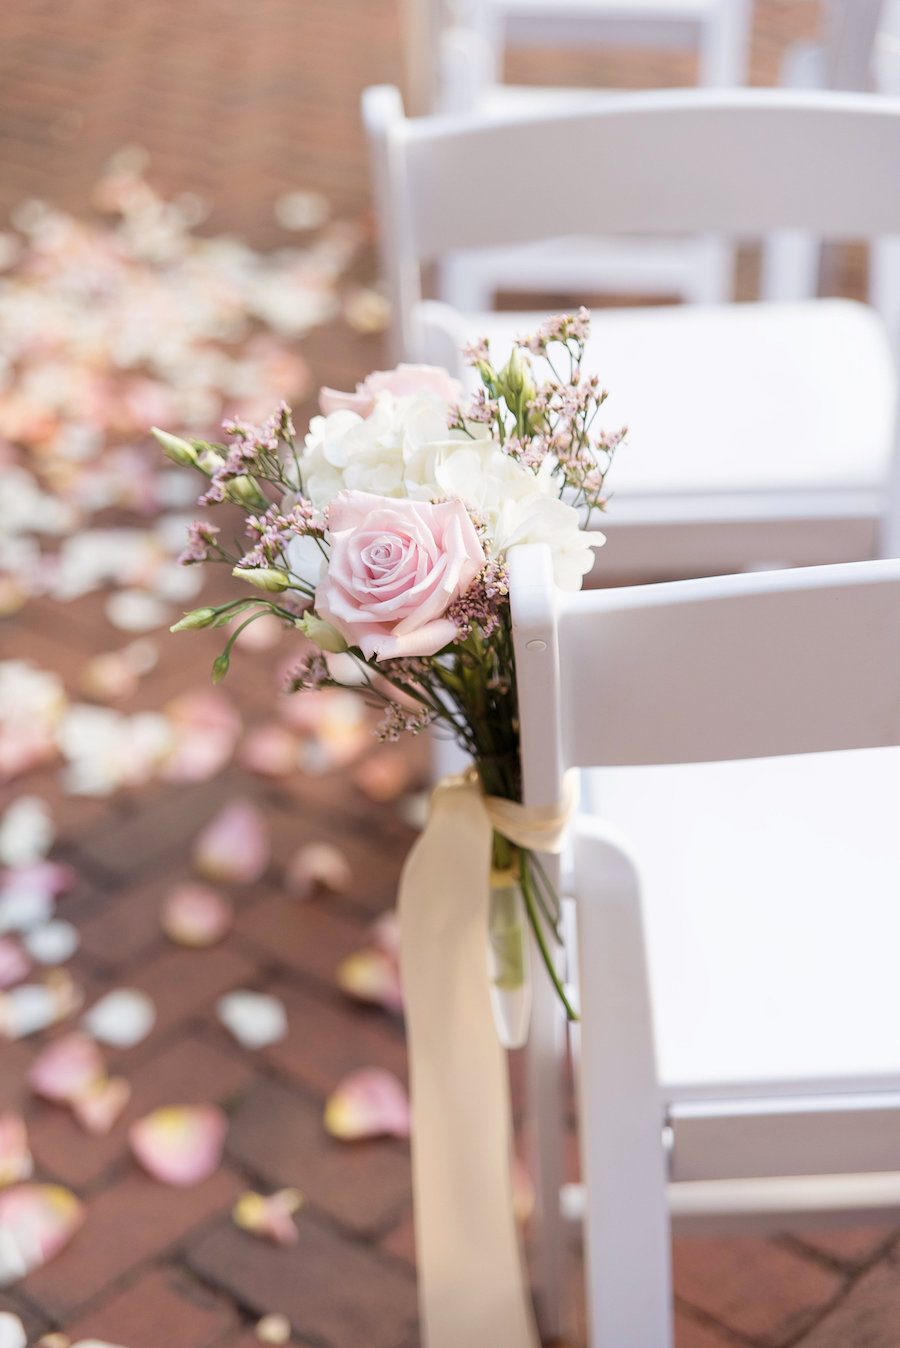 Detail Photo of White and Blush Rose and Greenery Ceremony Venue Decor by Tampa Bay Florist Wonderland Floral Art | St Petersburg Wedding